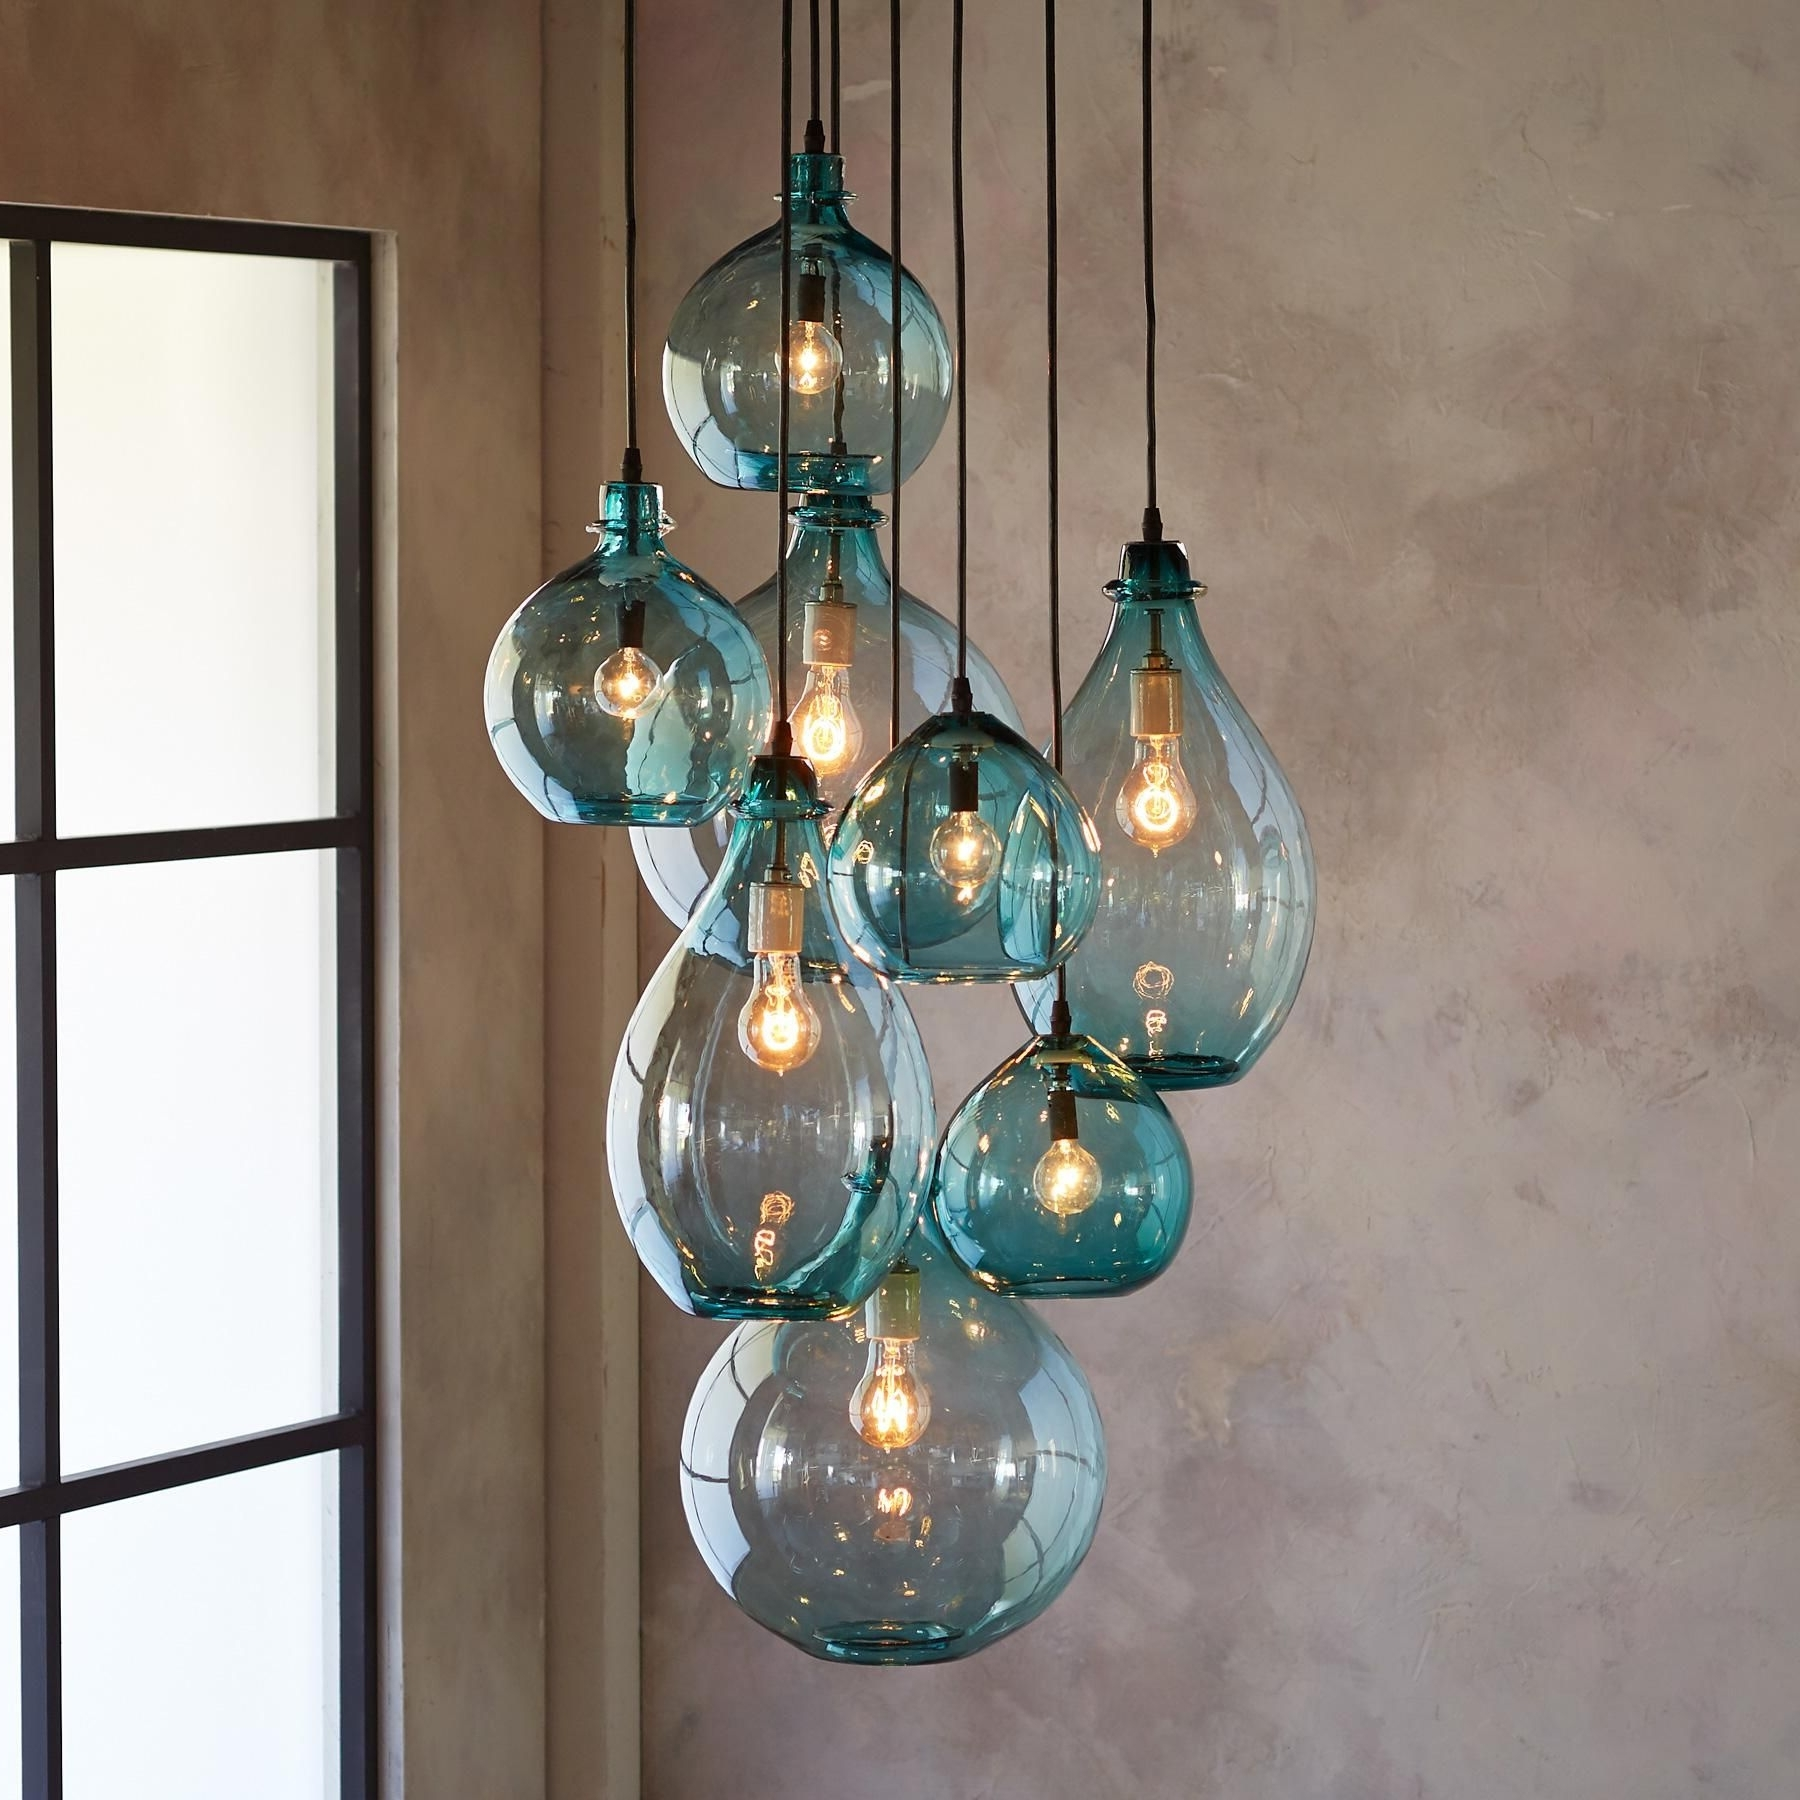 Salon Glass Pendant Canopy — Limpid Turquoise Drops Of Hand Blown Regarding 2017 Turquoise Chandelier Lights (View 11 of 15)